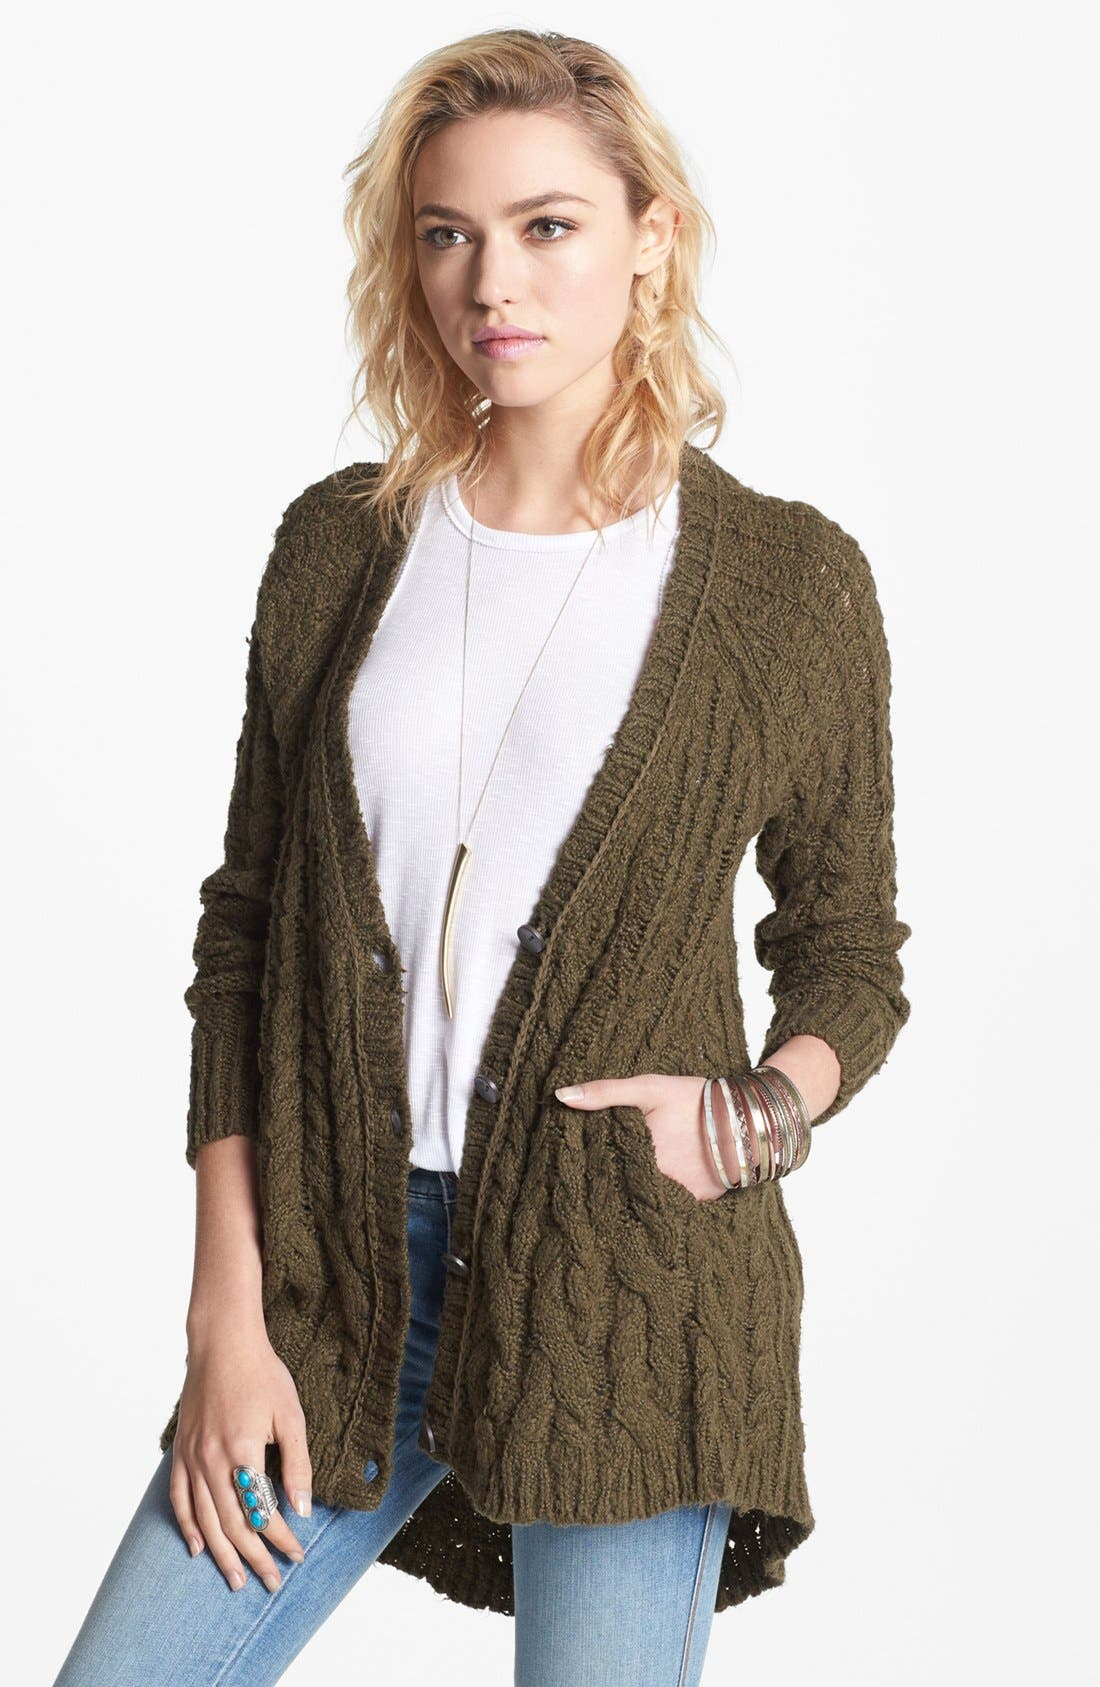 Alternate Image 1 Selected - Free People 'The Fable' Knit Cardigan